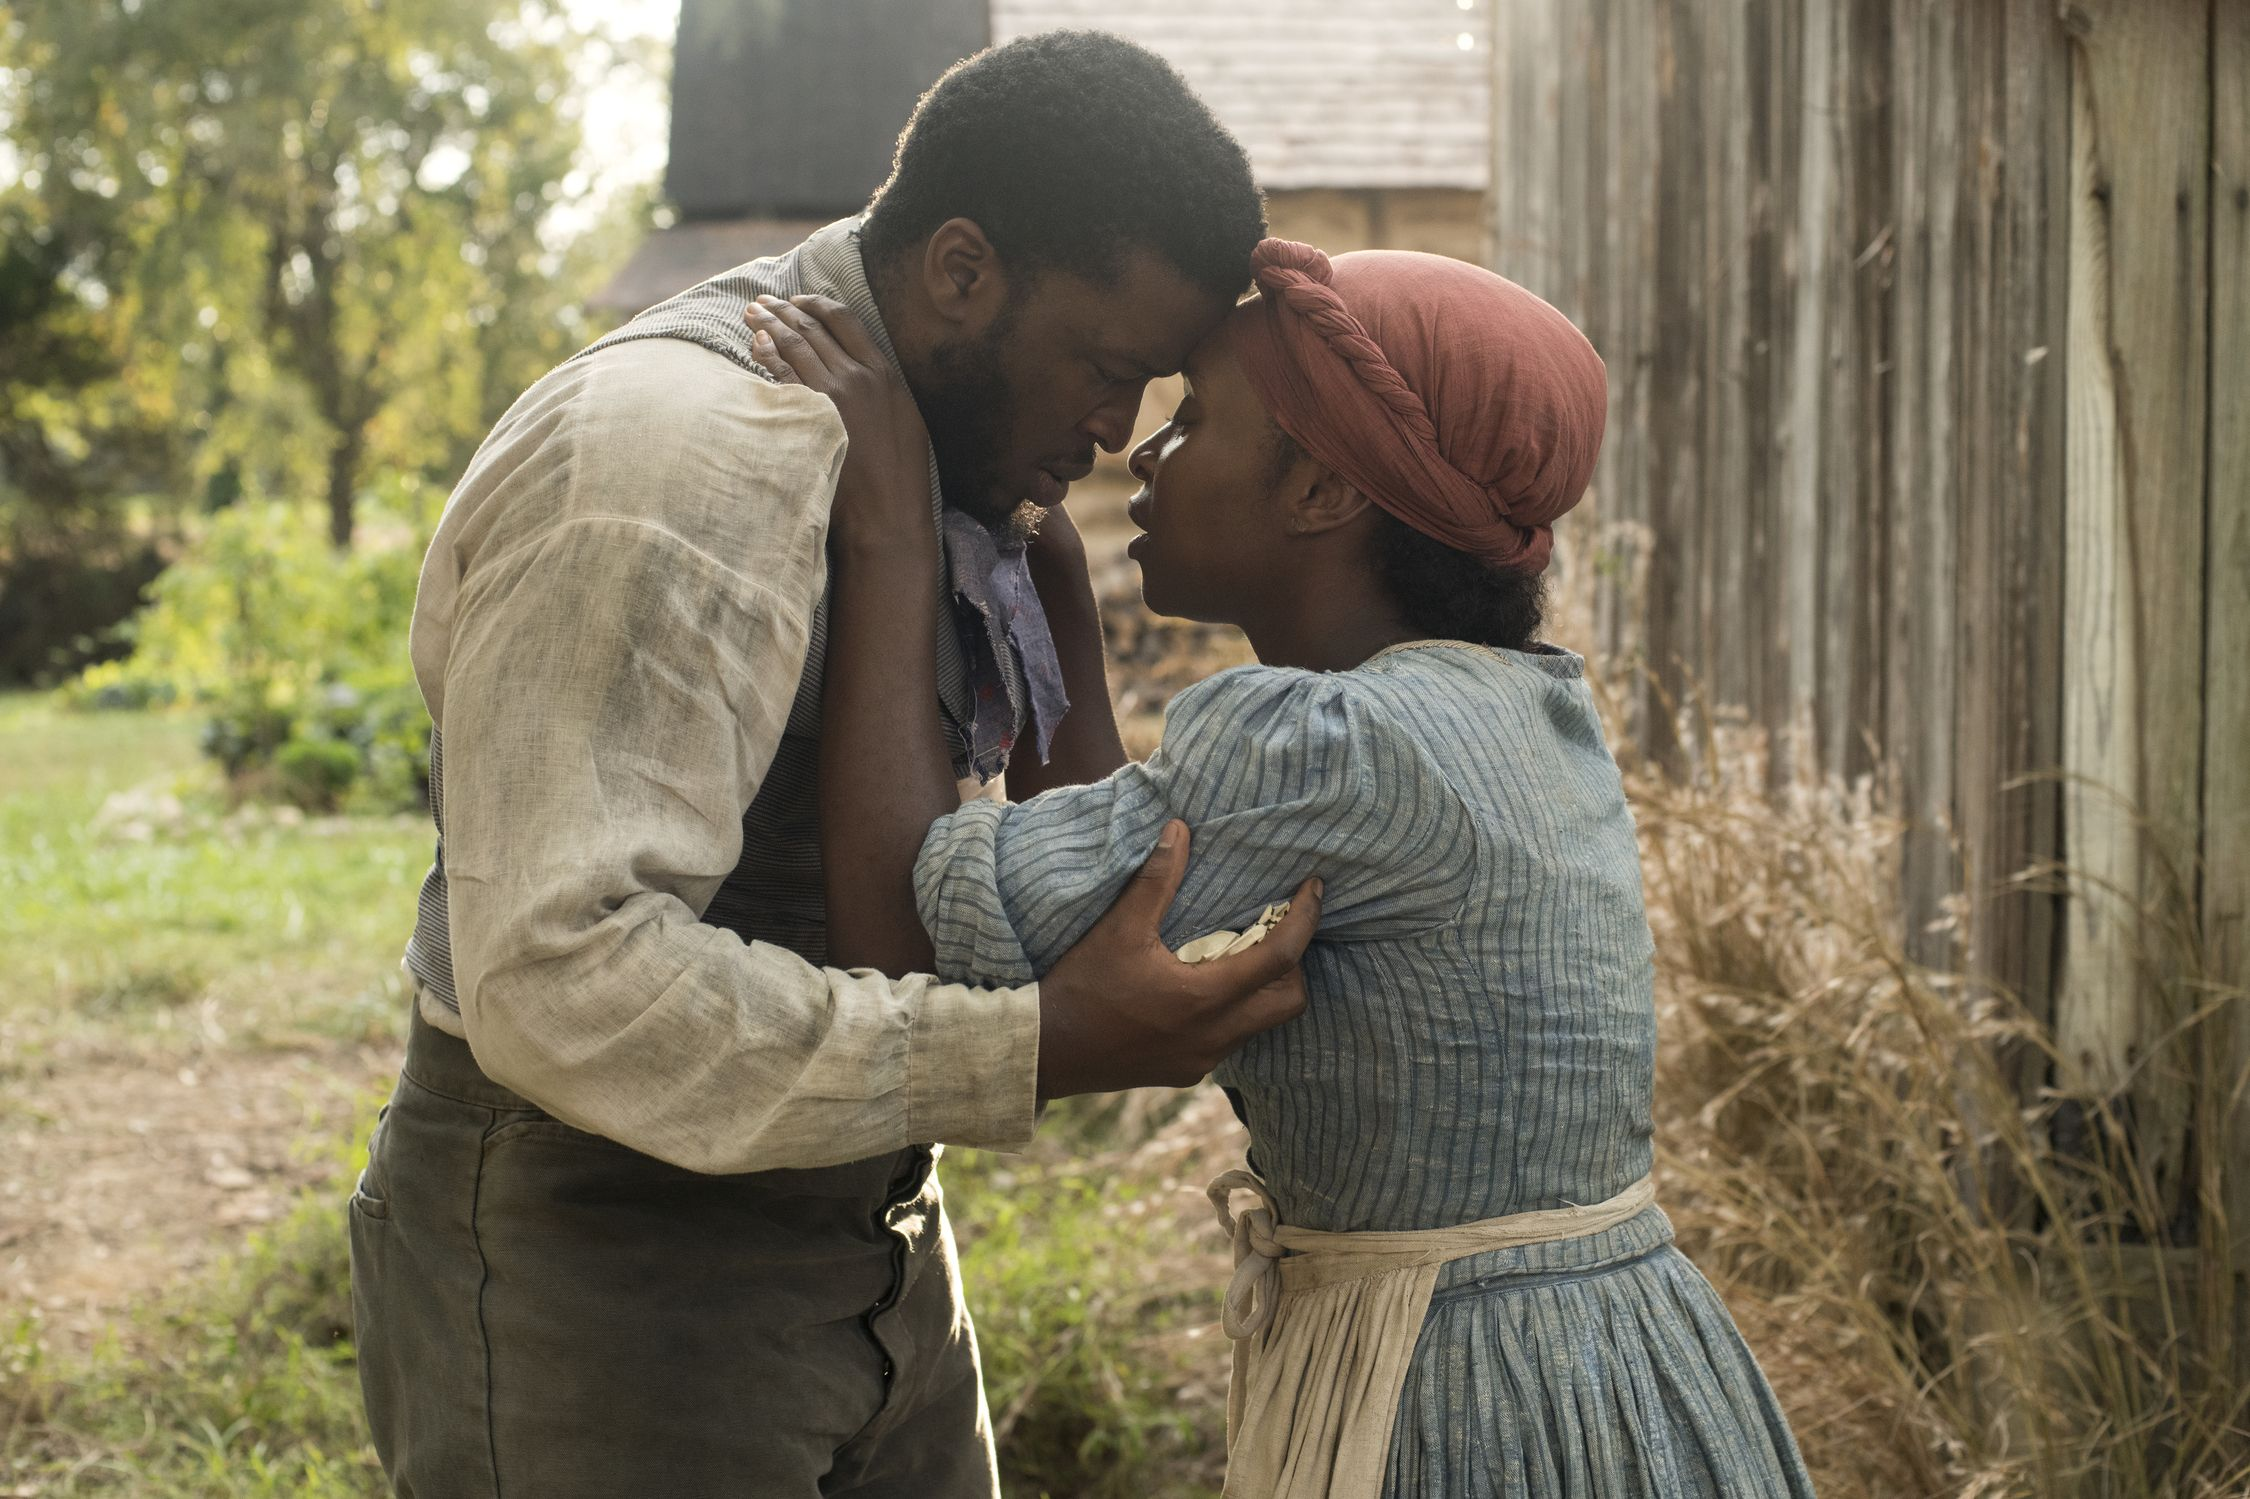 8 Harriet Tubman Facts To Know Before Watching The Harriet Movie